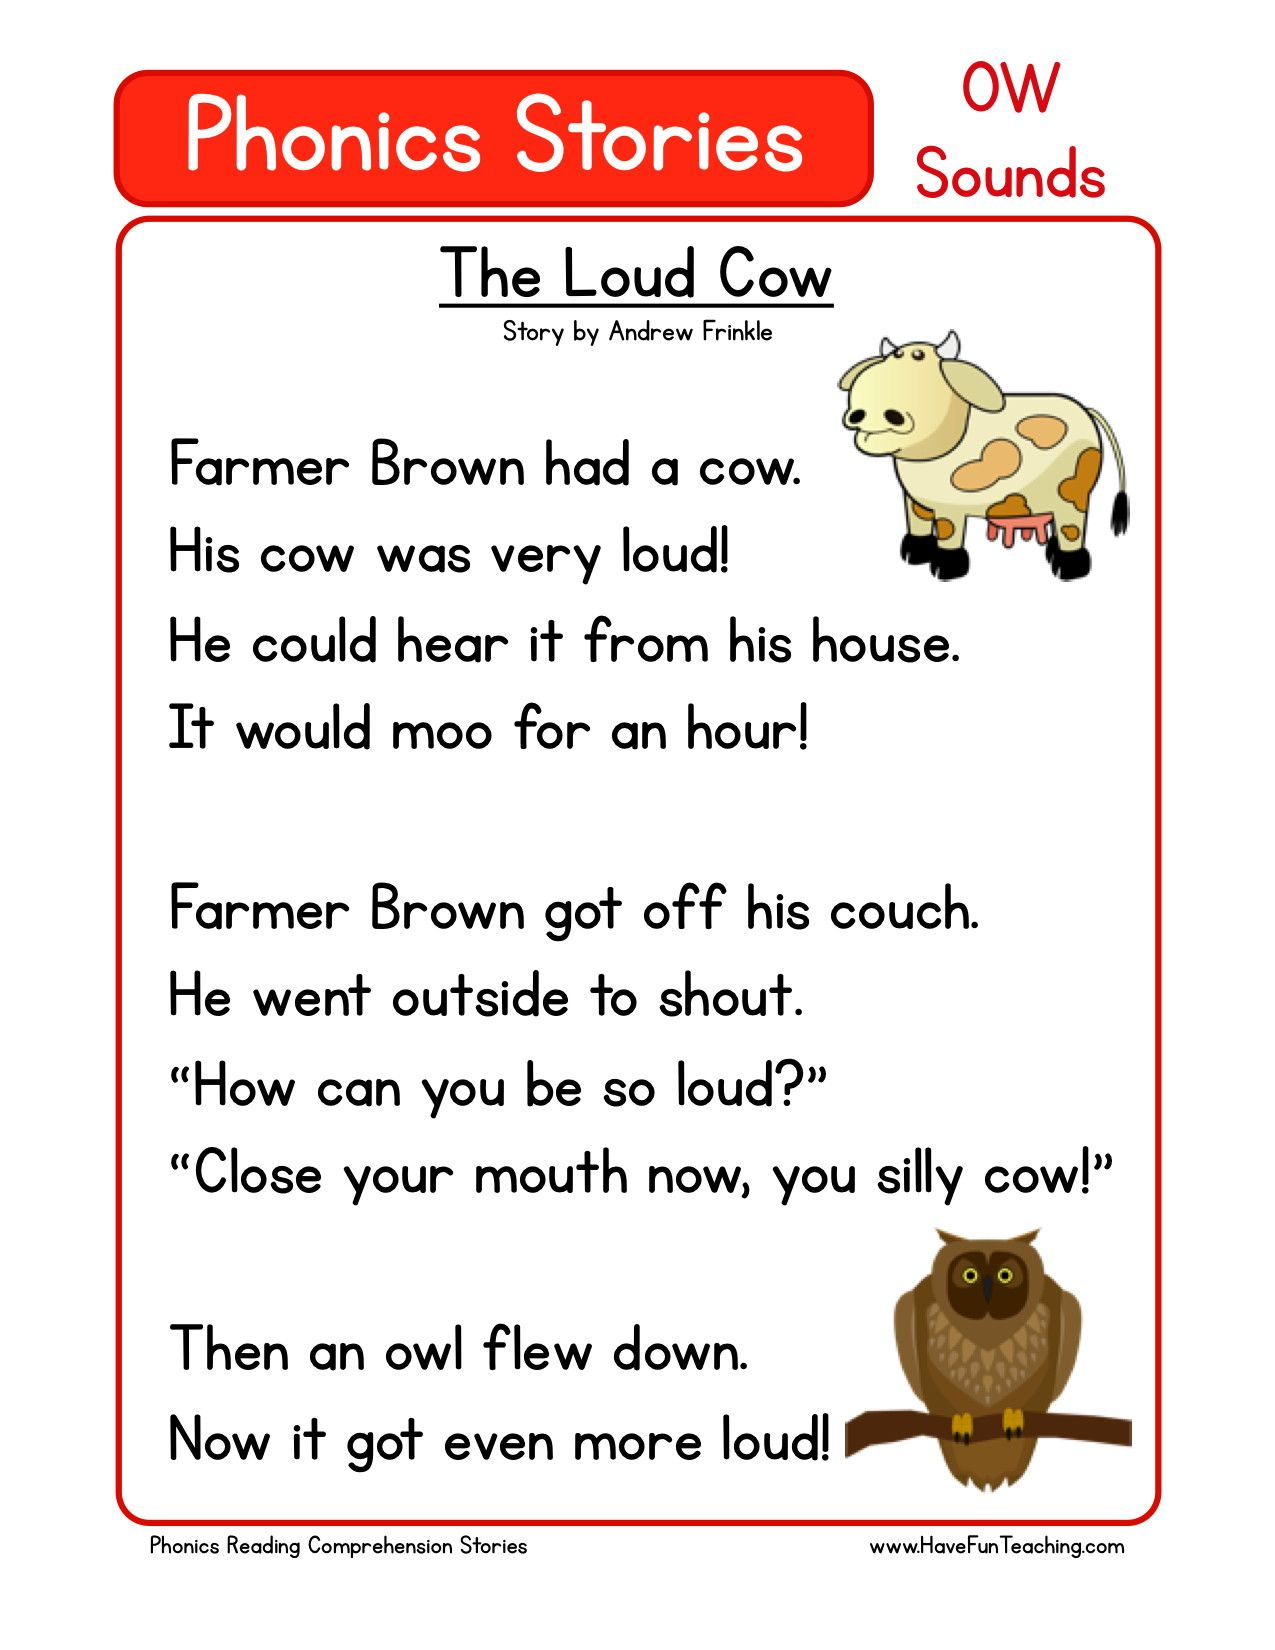 Reading Comprehension Worksheet The Loud Cow Phonics Reading Reading Comprehension Worksheets Reading Comprehension